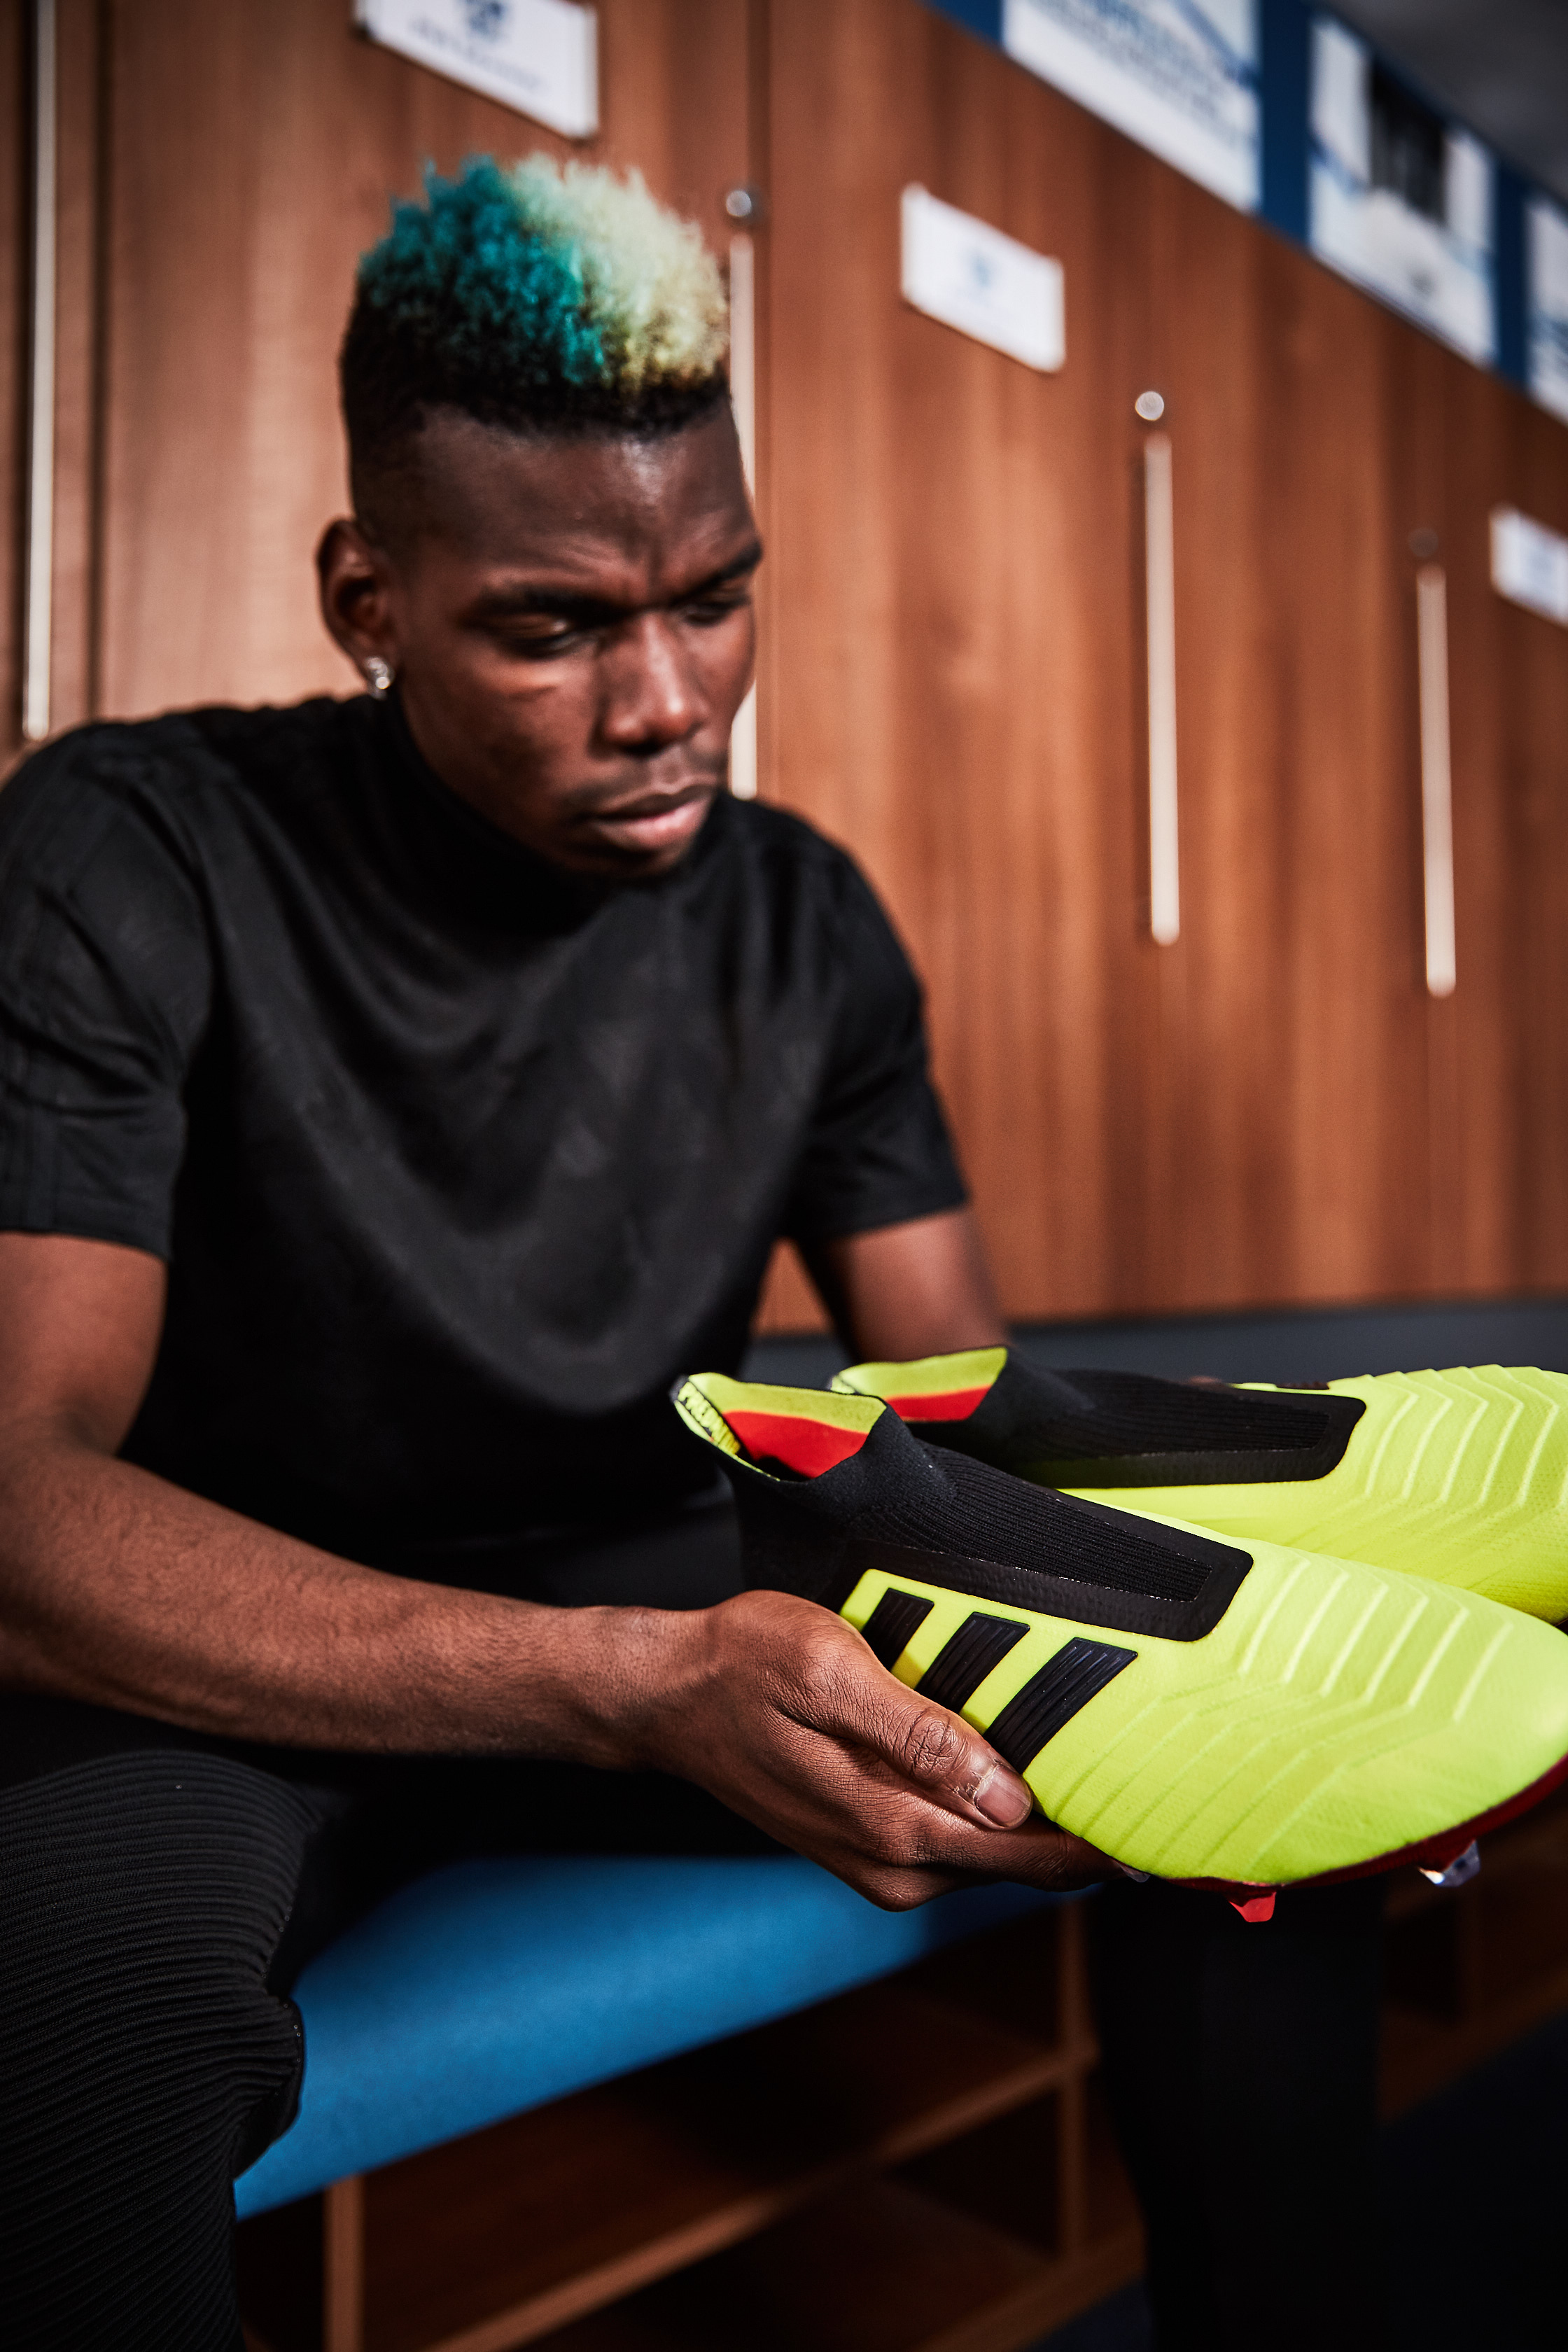 adidas for the 2018 FIFA World Cup